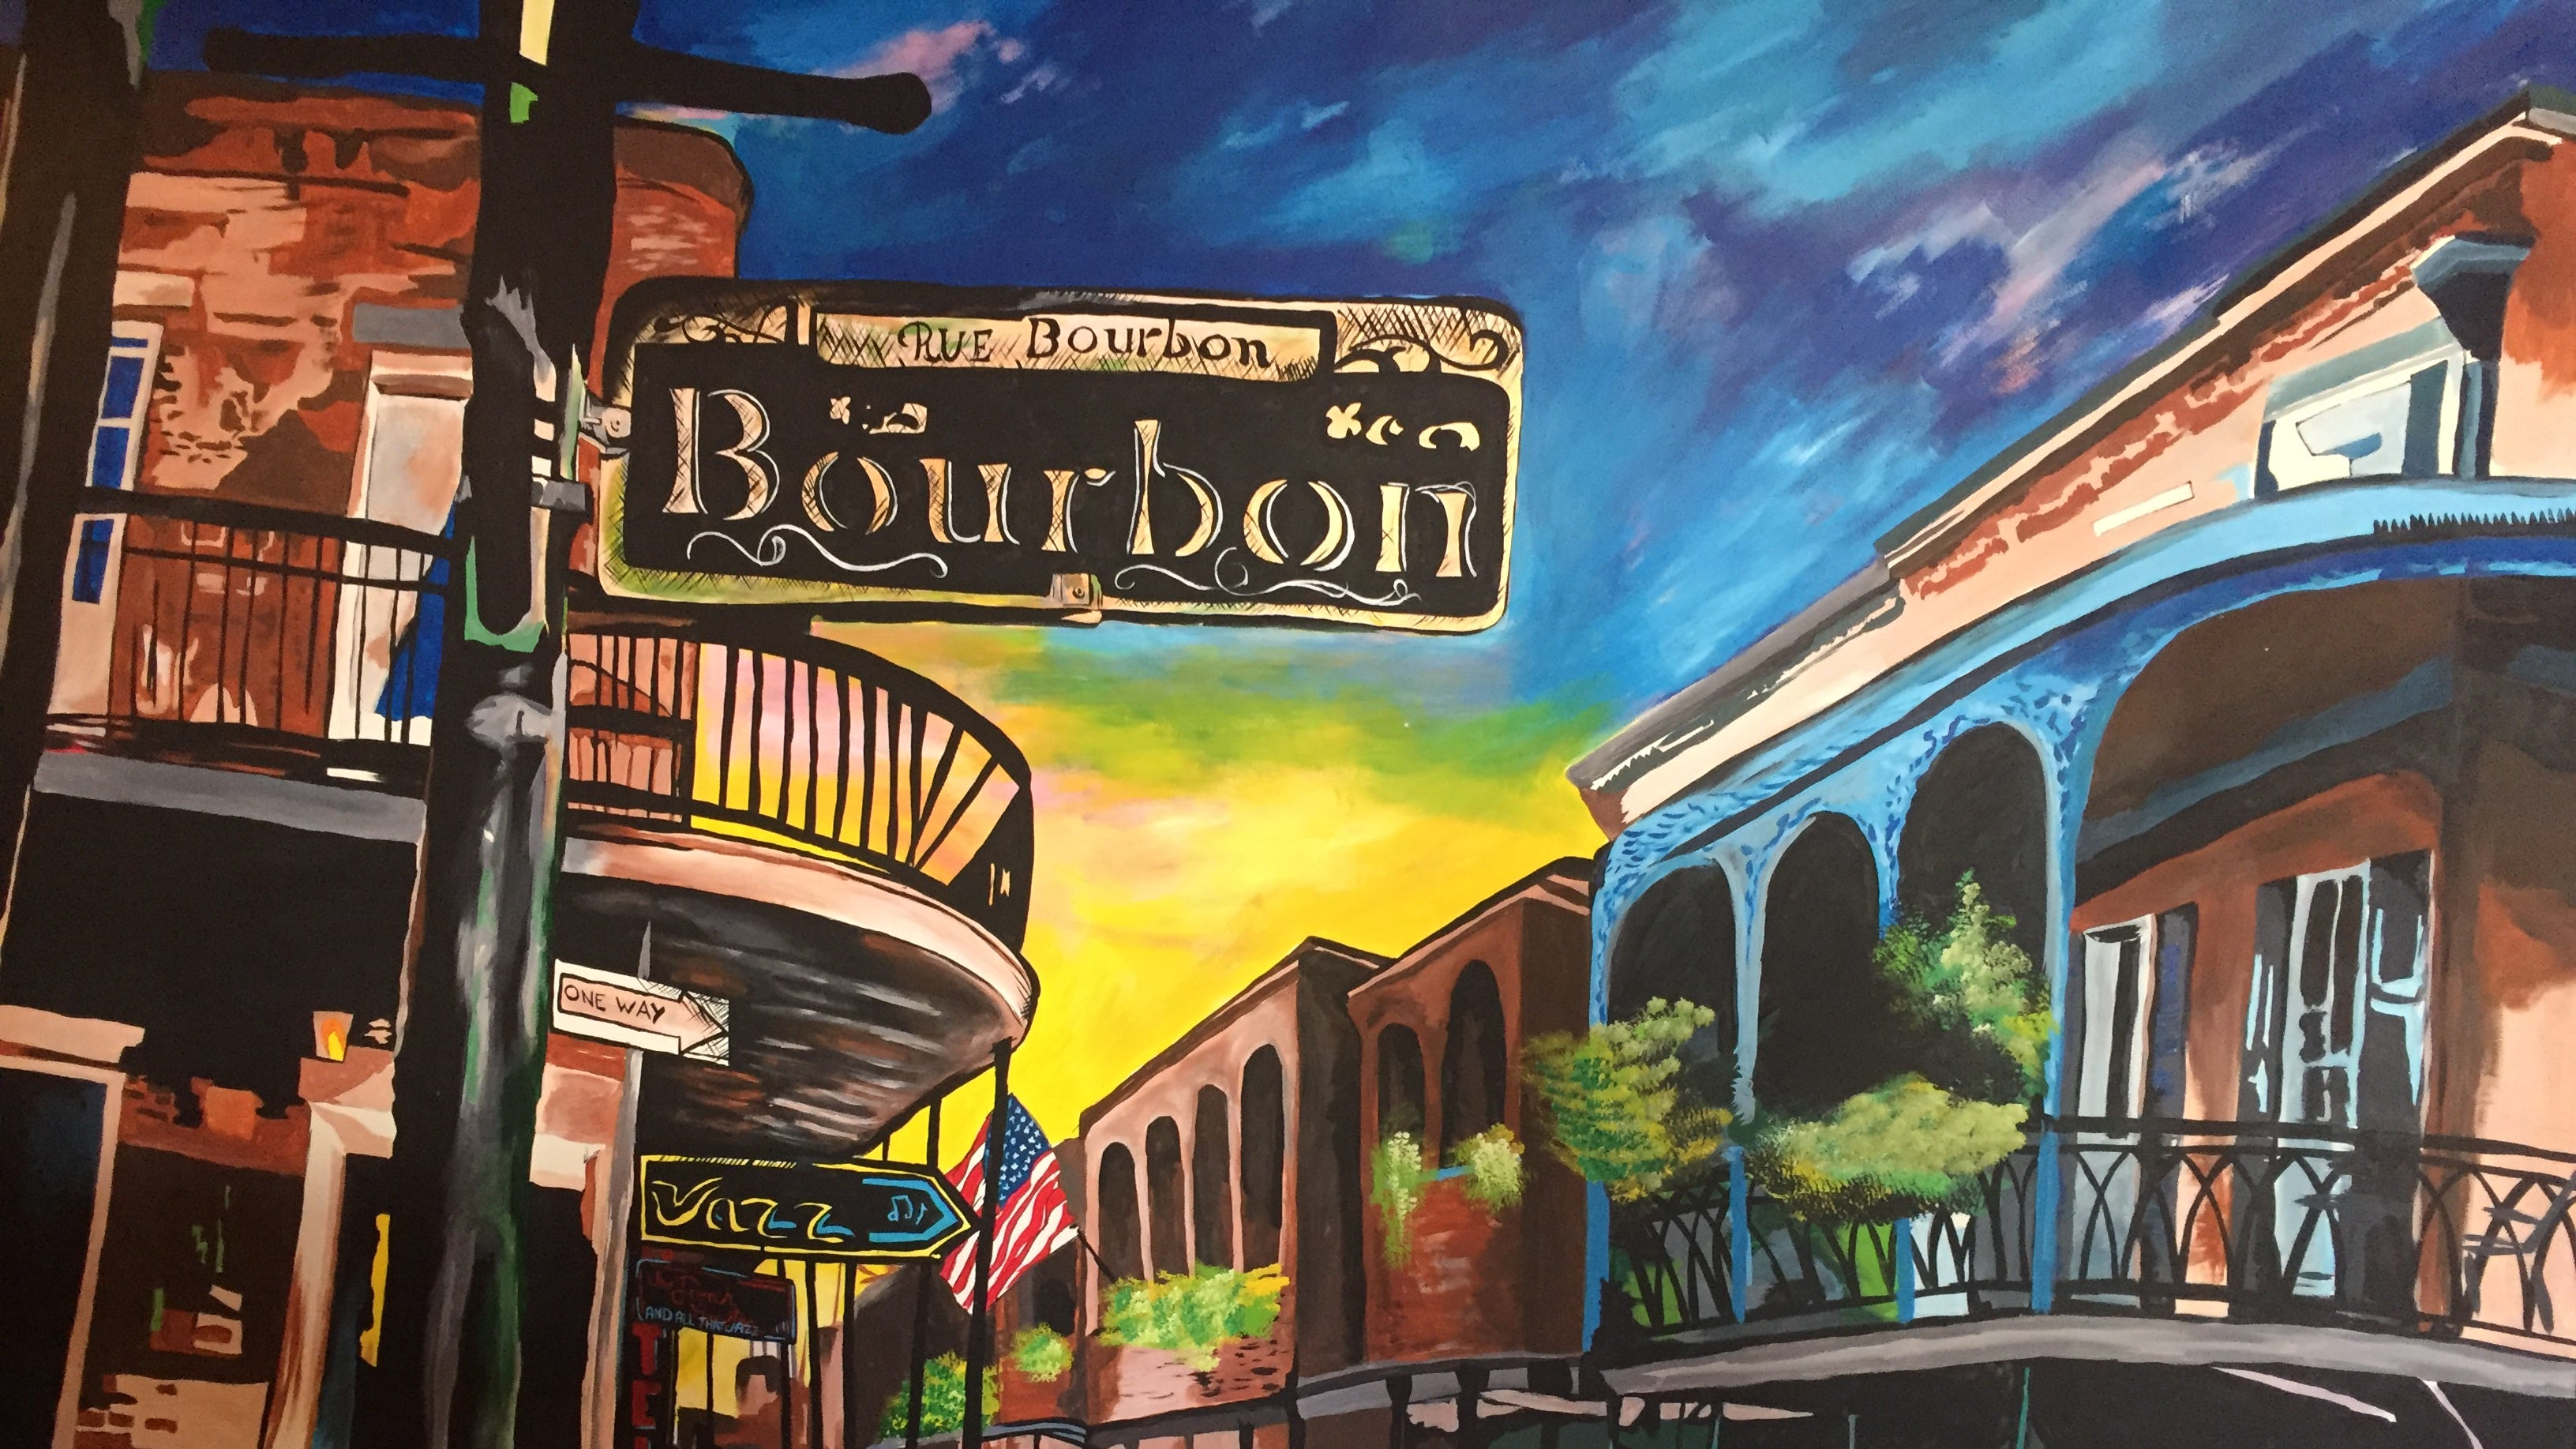 At the new Rue Bourbon restaurant in Midtown Reno, a mural of Bourbon Street in New Orleans, the restaurant's namesake, brightens the bar and dining room. The restaurant offers a small menu of New Orleans standards.